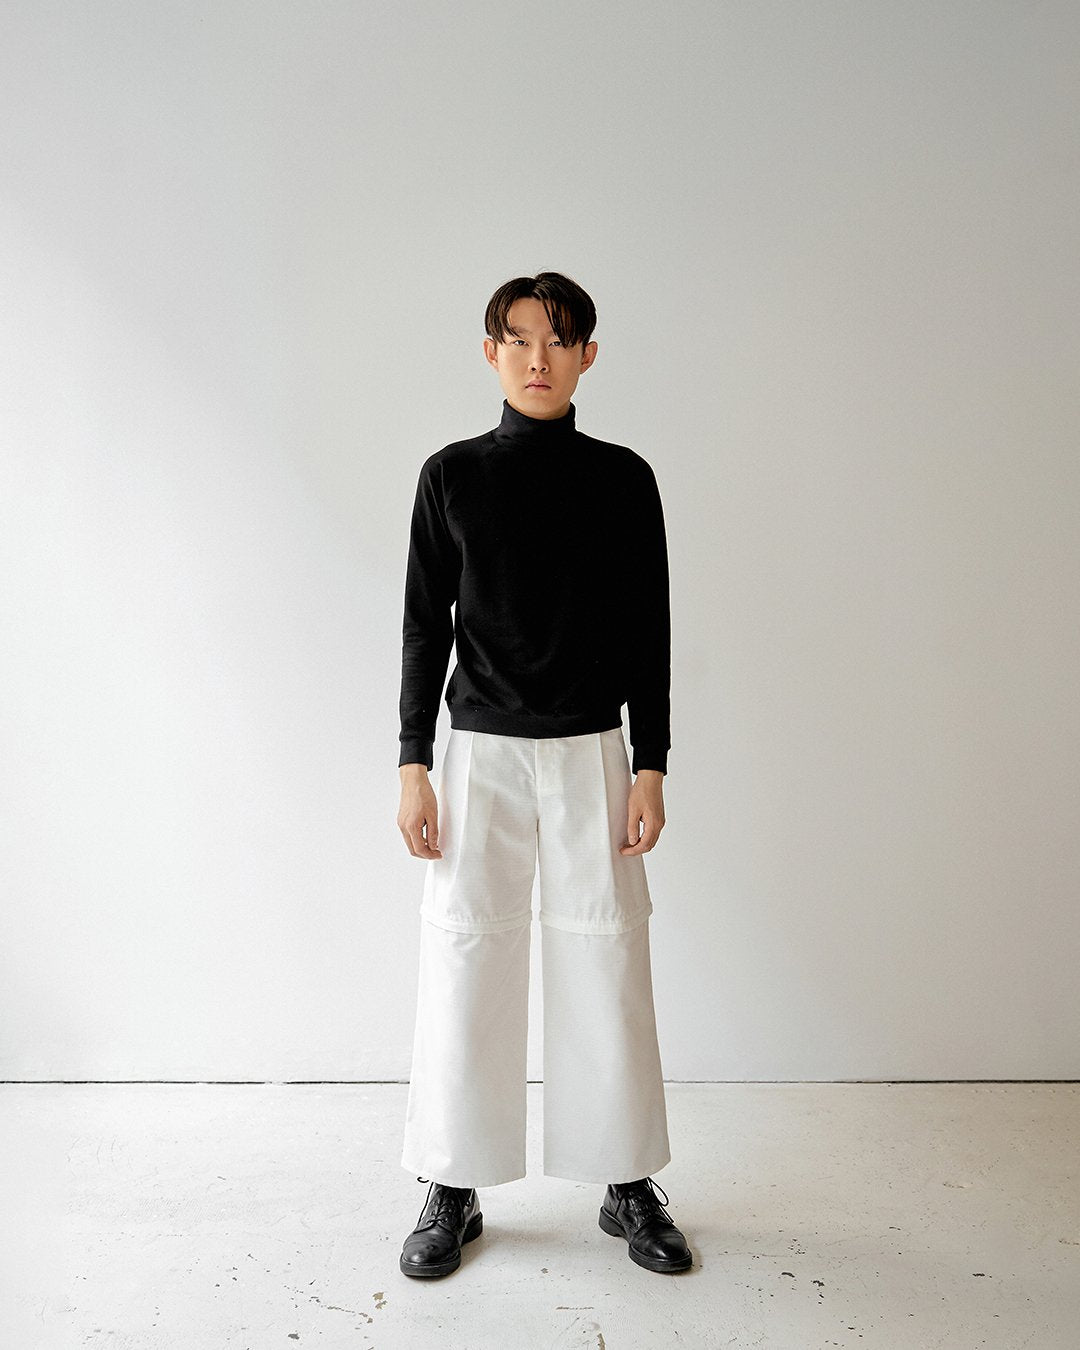 Pants White ripstop convertible unisex genderless clothing montreal veri